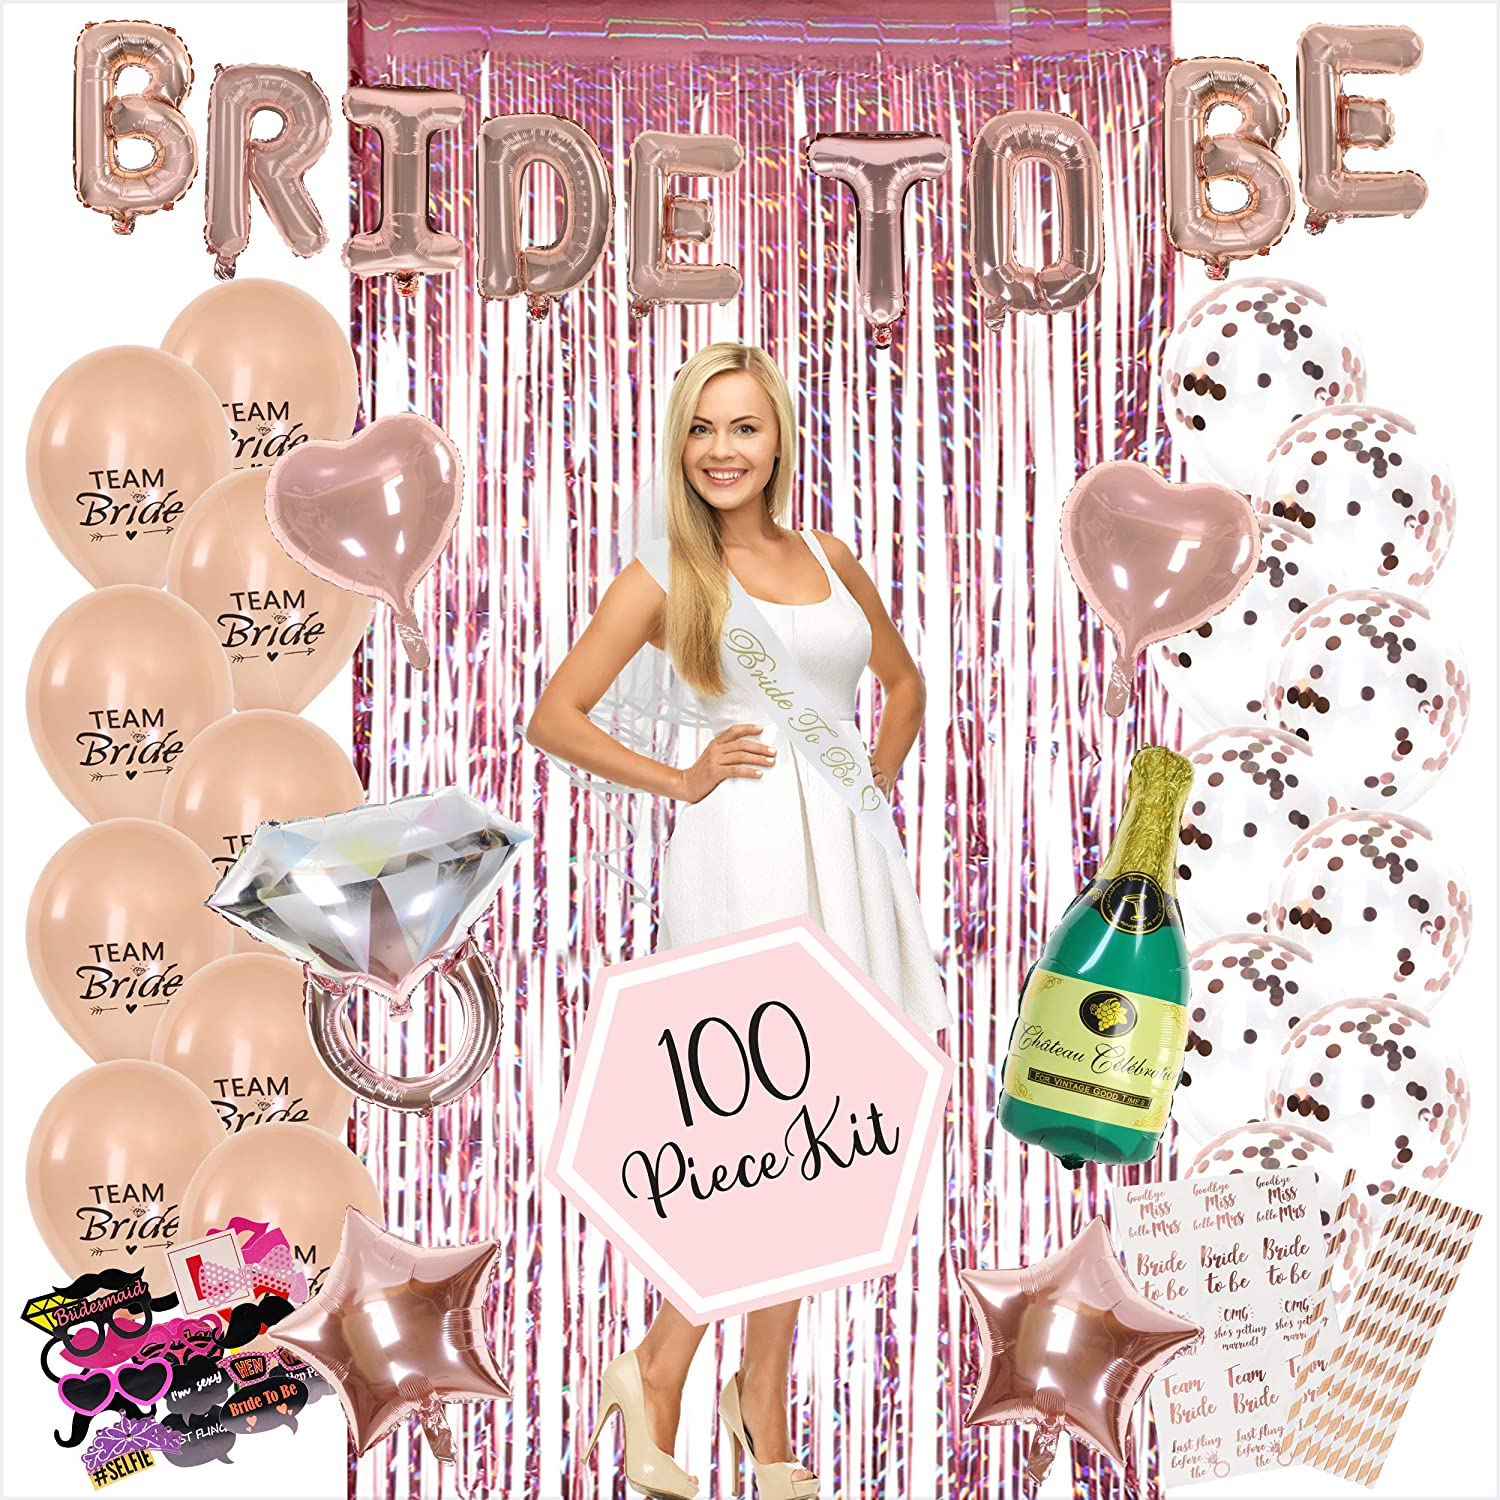 100PC Bachelorette Party Decorations Kit | Bridal Shower Decor Supplies | Rose Gold Paper Straws, Fringe Photo Booth Backdrop & Props, Bride To Be Sash, Veil, Temporary Tattoos, Confetti Balloons Pack